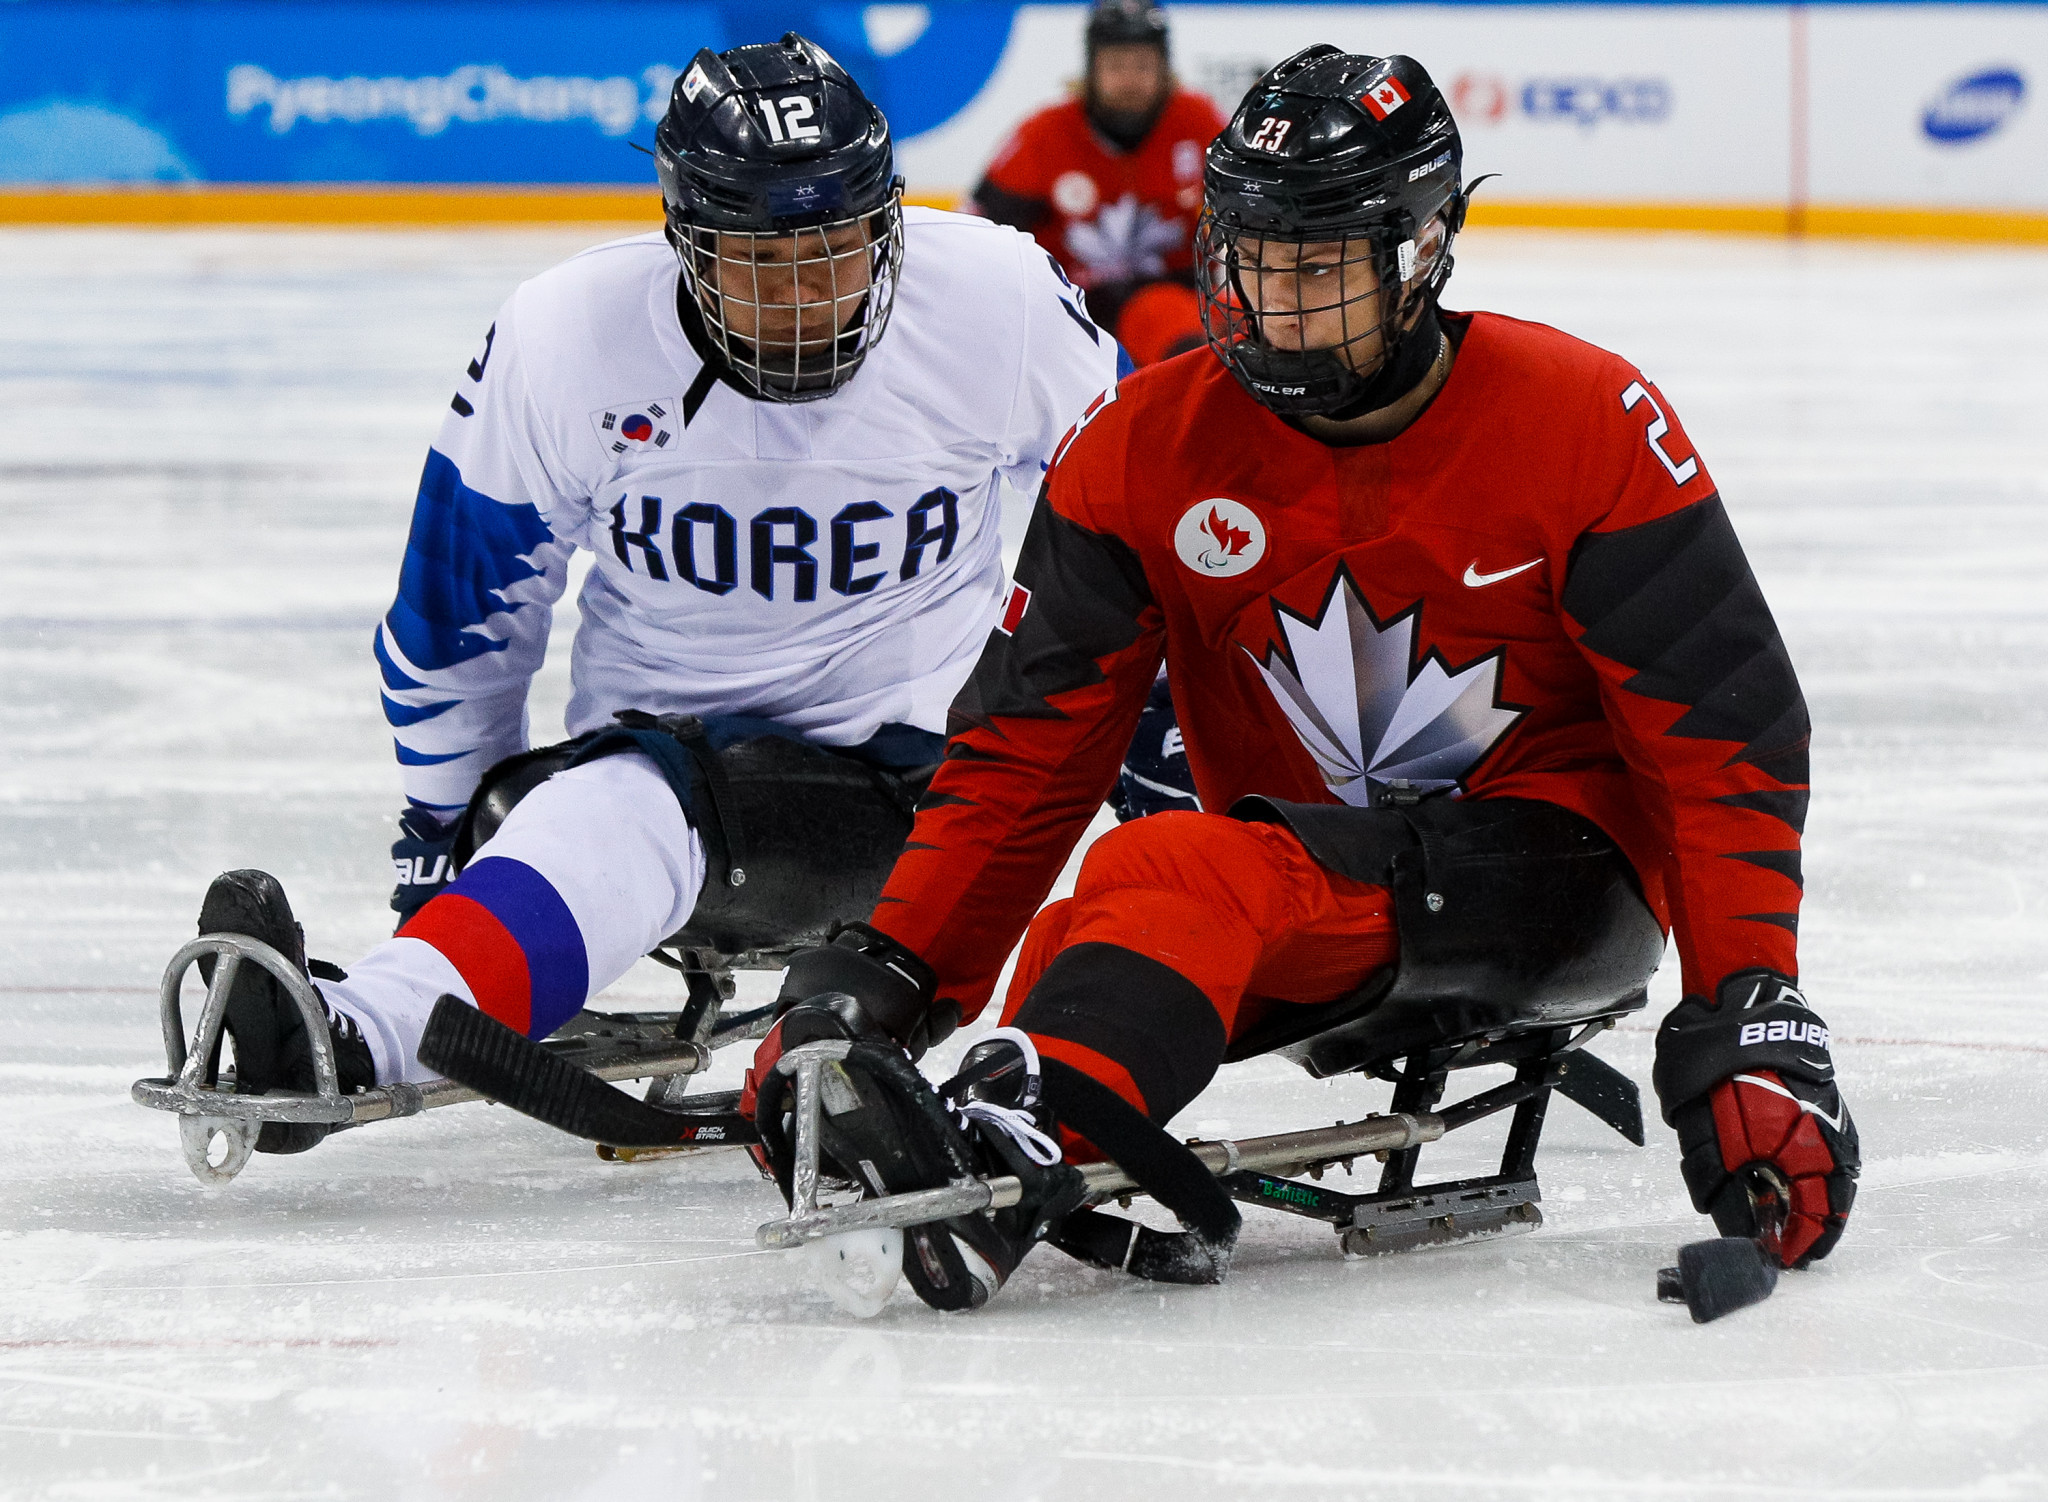 Two-sport Para-athlete Hickey to focus on ice hockey in quest for Beijing 2022 gold